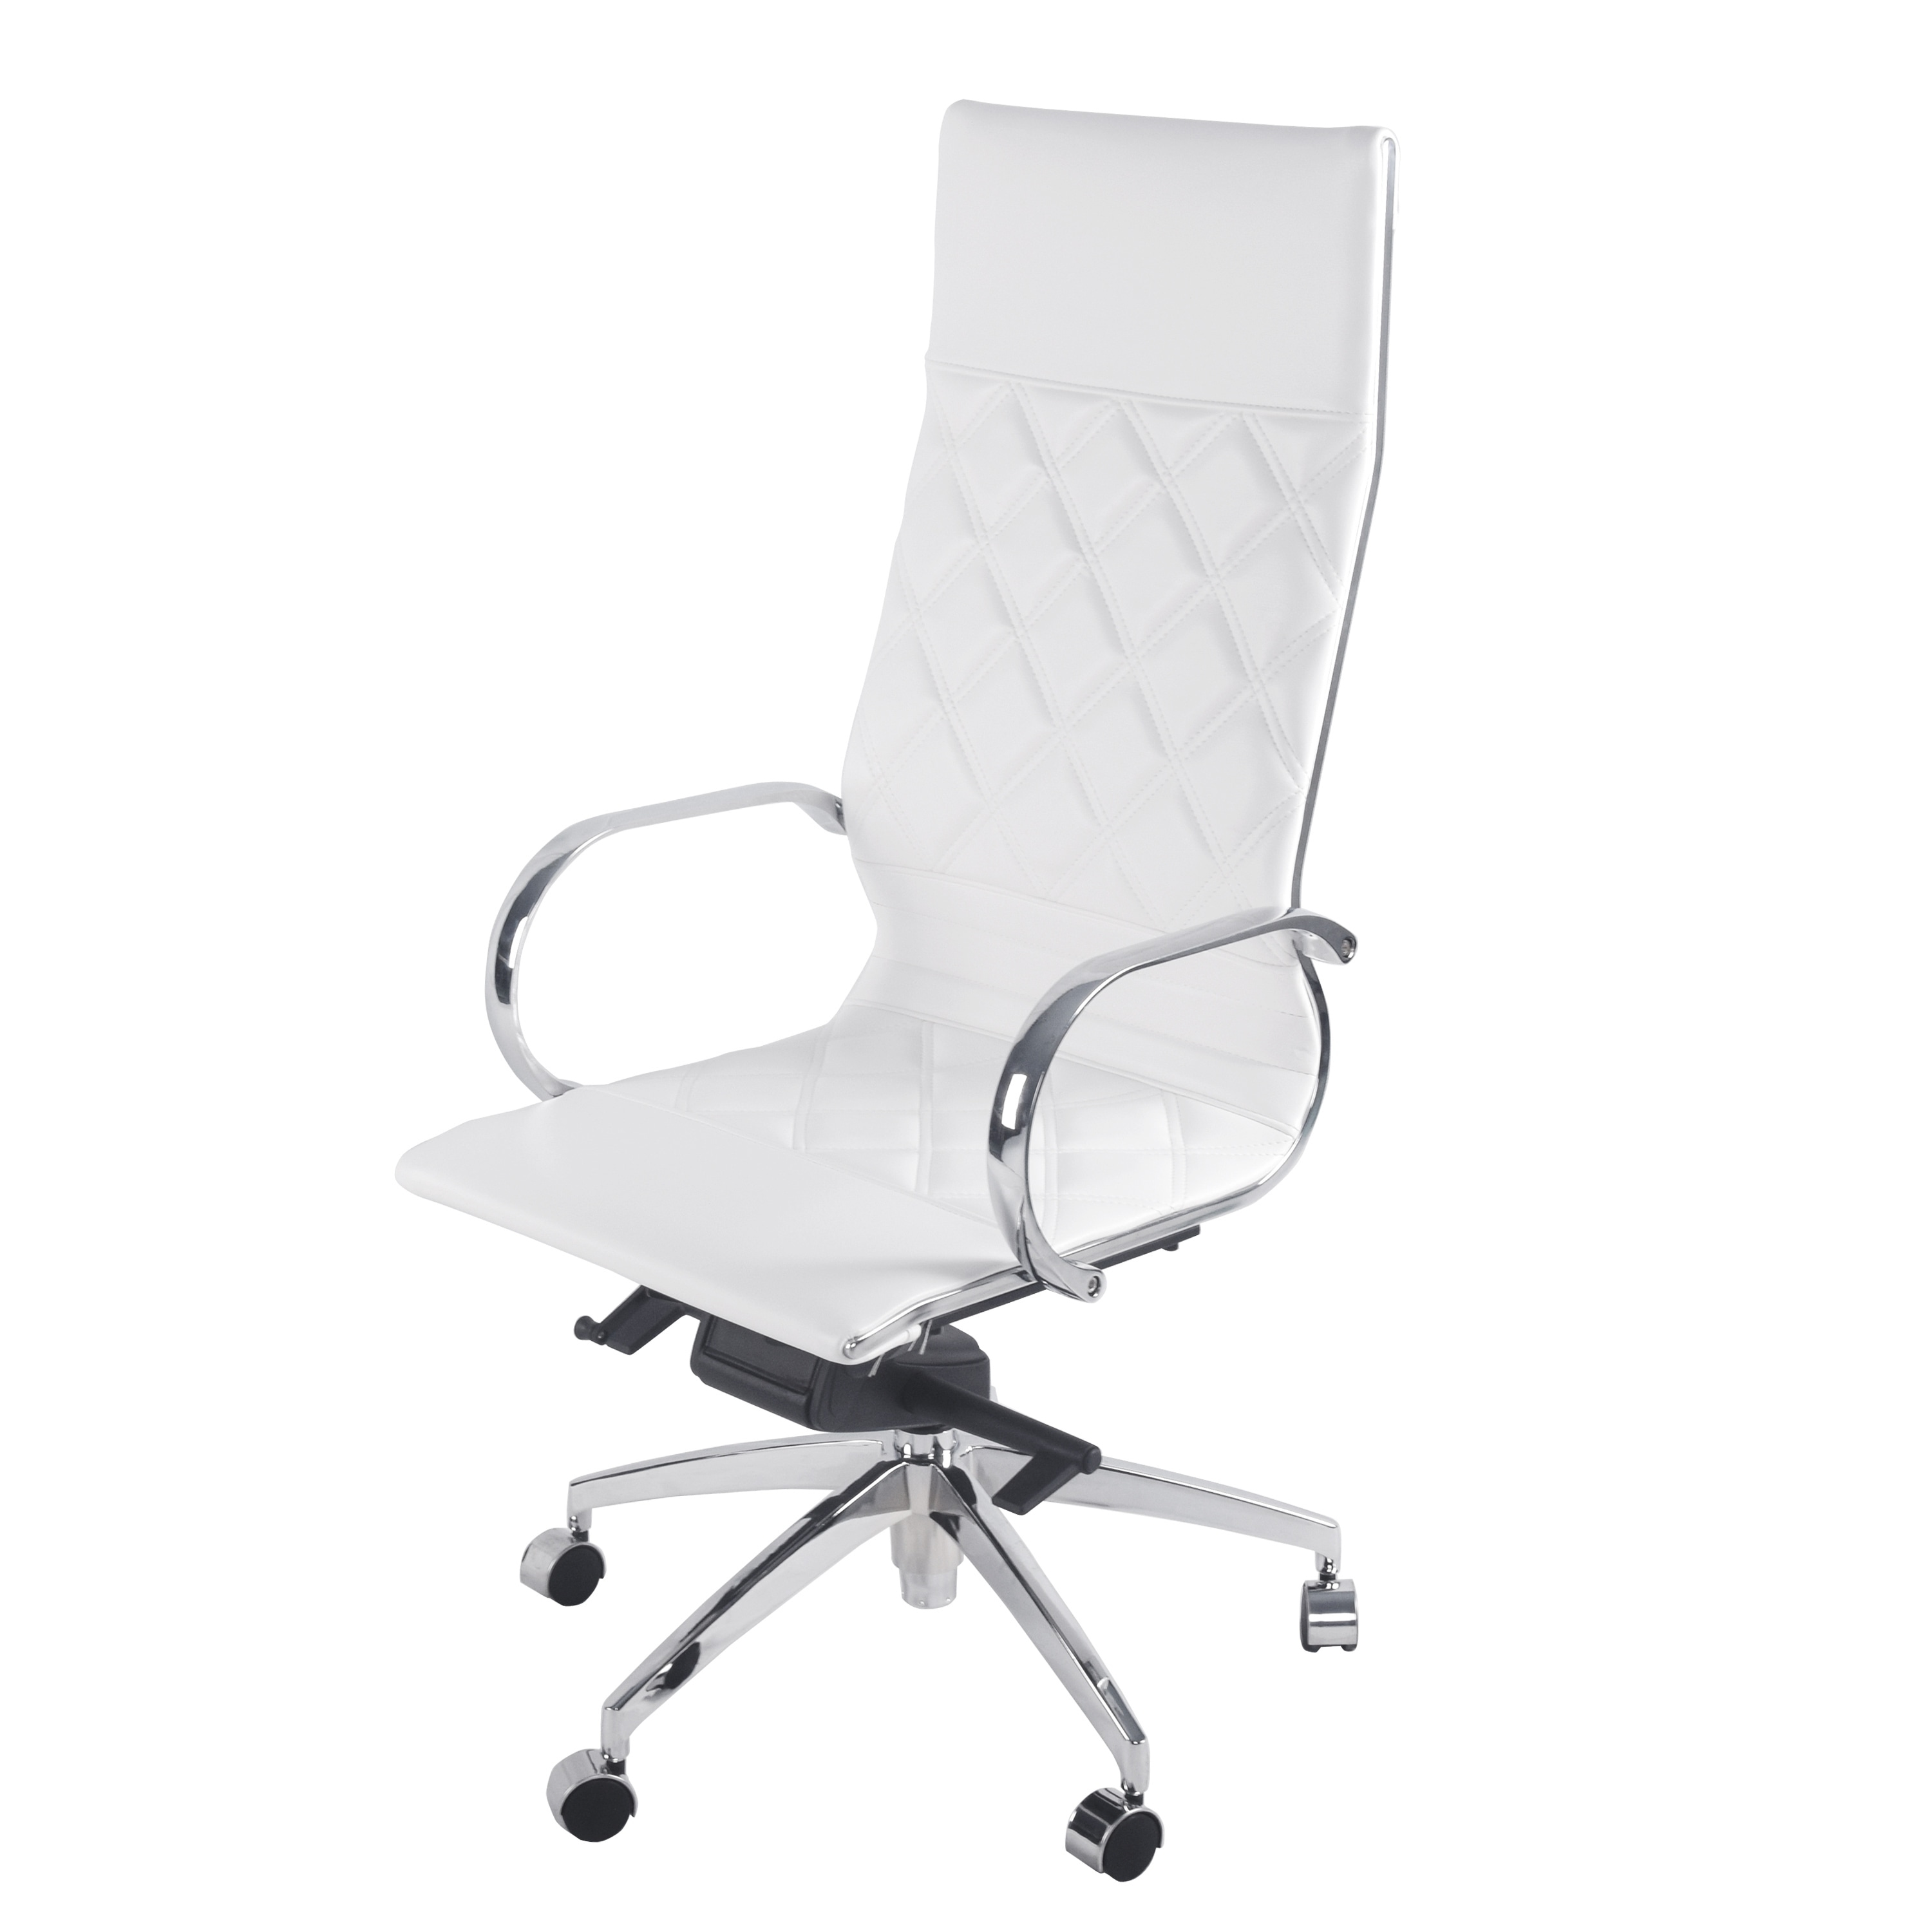 Shop Atlas PU Leather Executive High Back Office Chair   Free Shipping  Today   Overstock.com   18215477